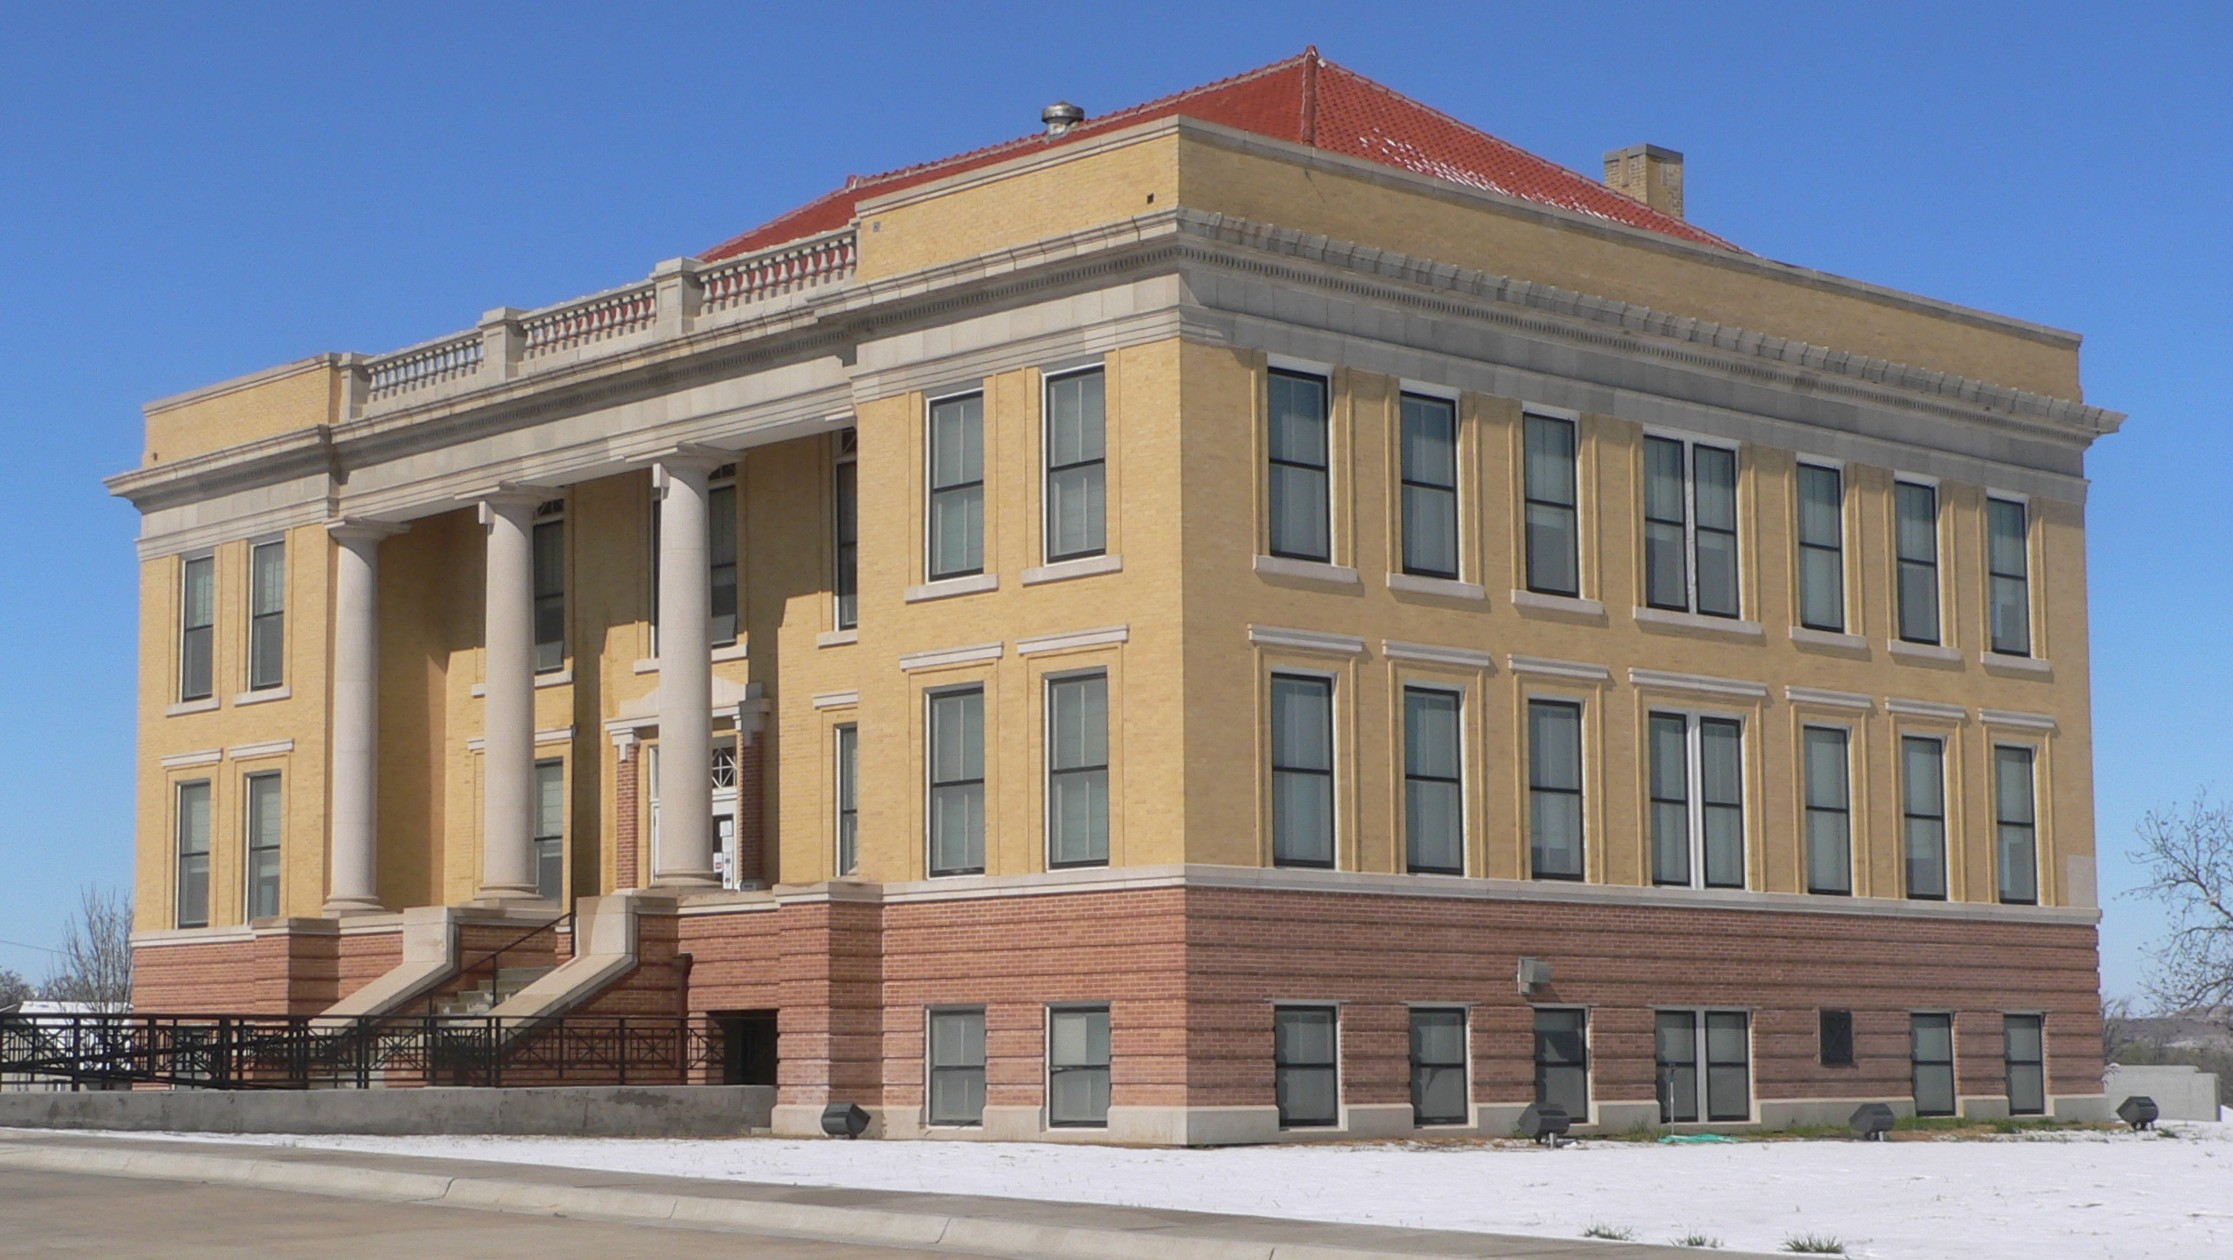 roberts county Welcome on january 8, 1901, a delegation of the town of sisseton addressed the board on the question of building a courthouse for the county of roberts in the near future.